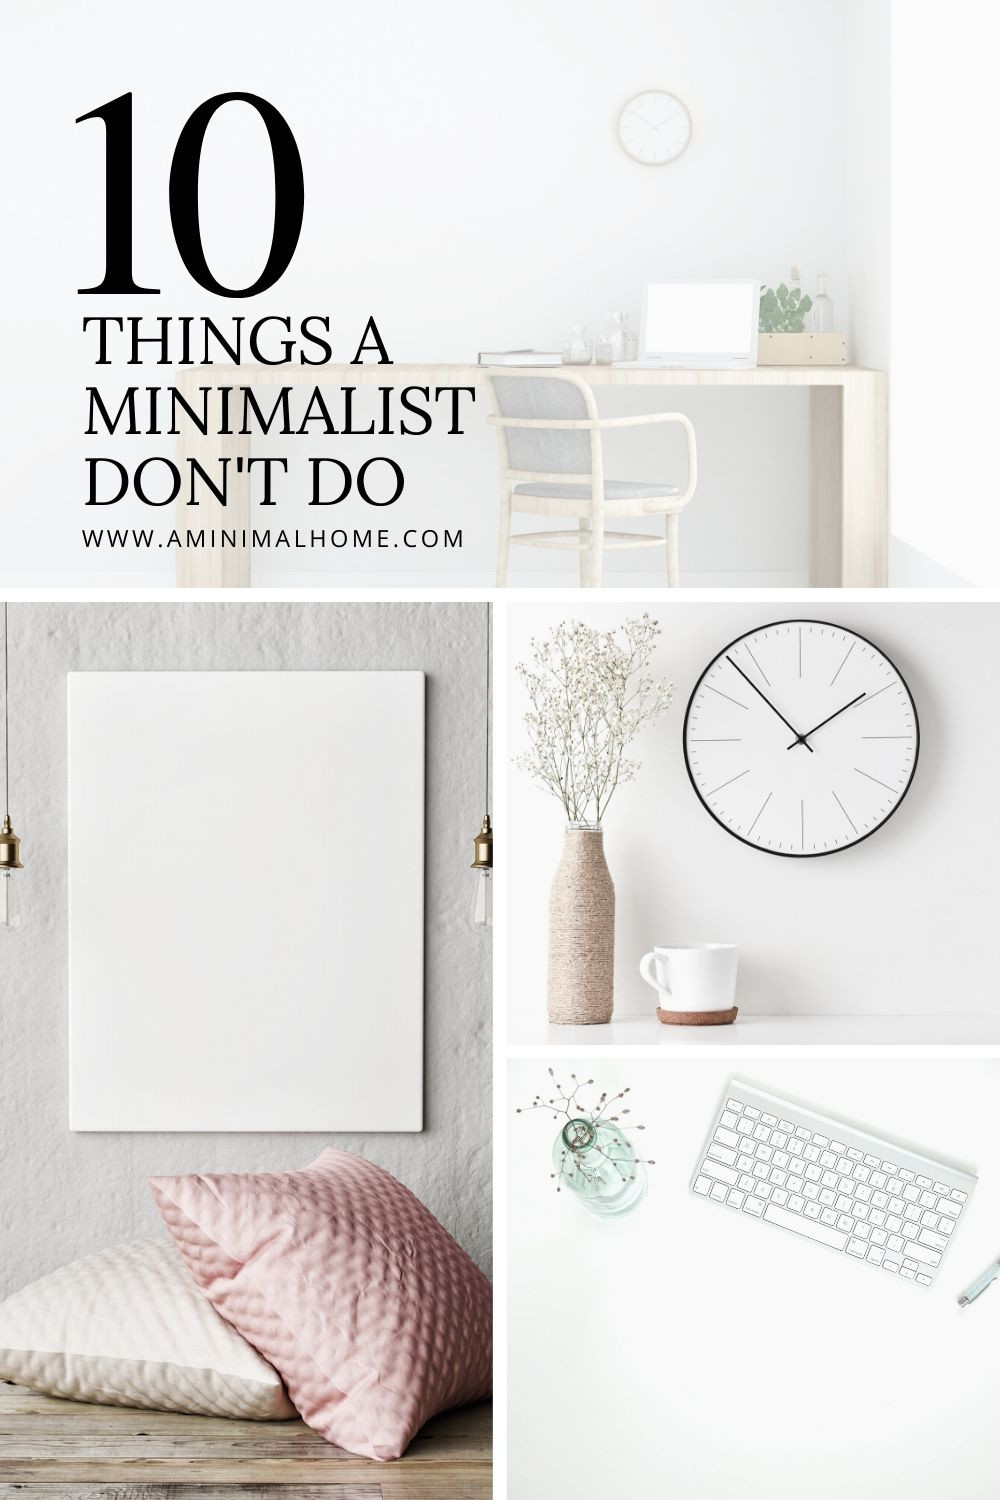 10 things a minimalist dont do